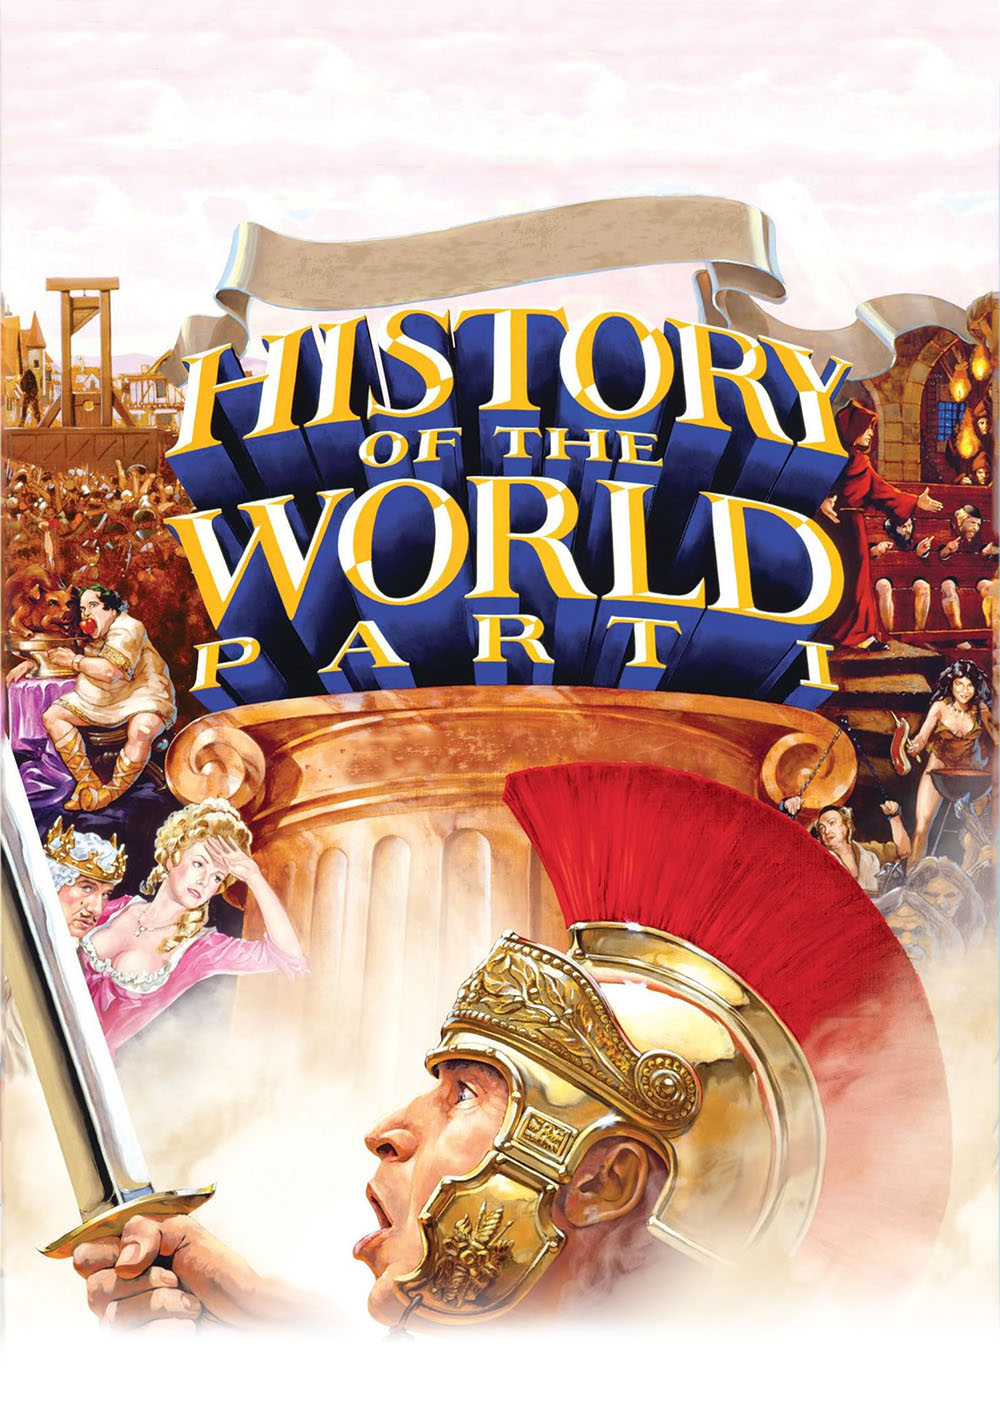 history-of-the-world-part-i-poster 1.jpg